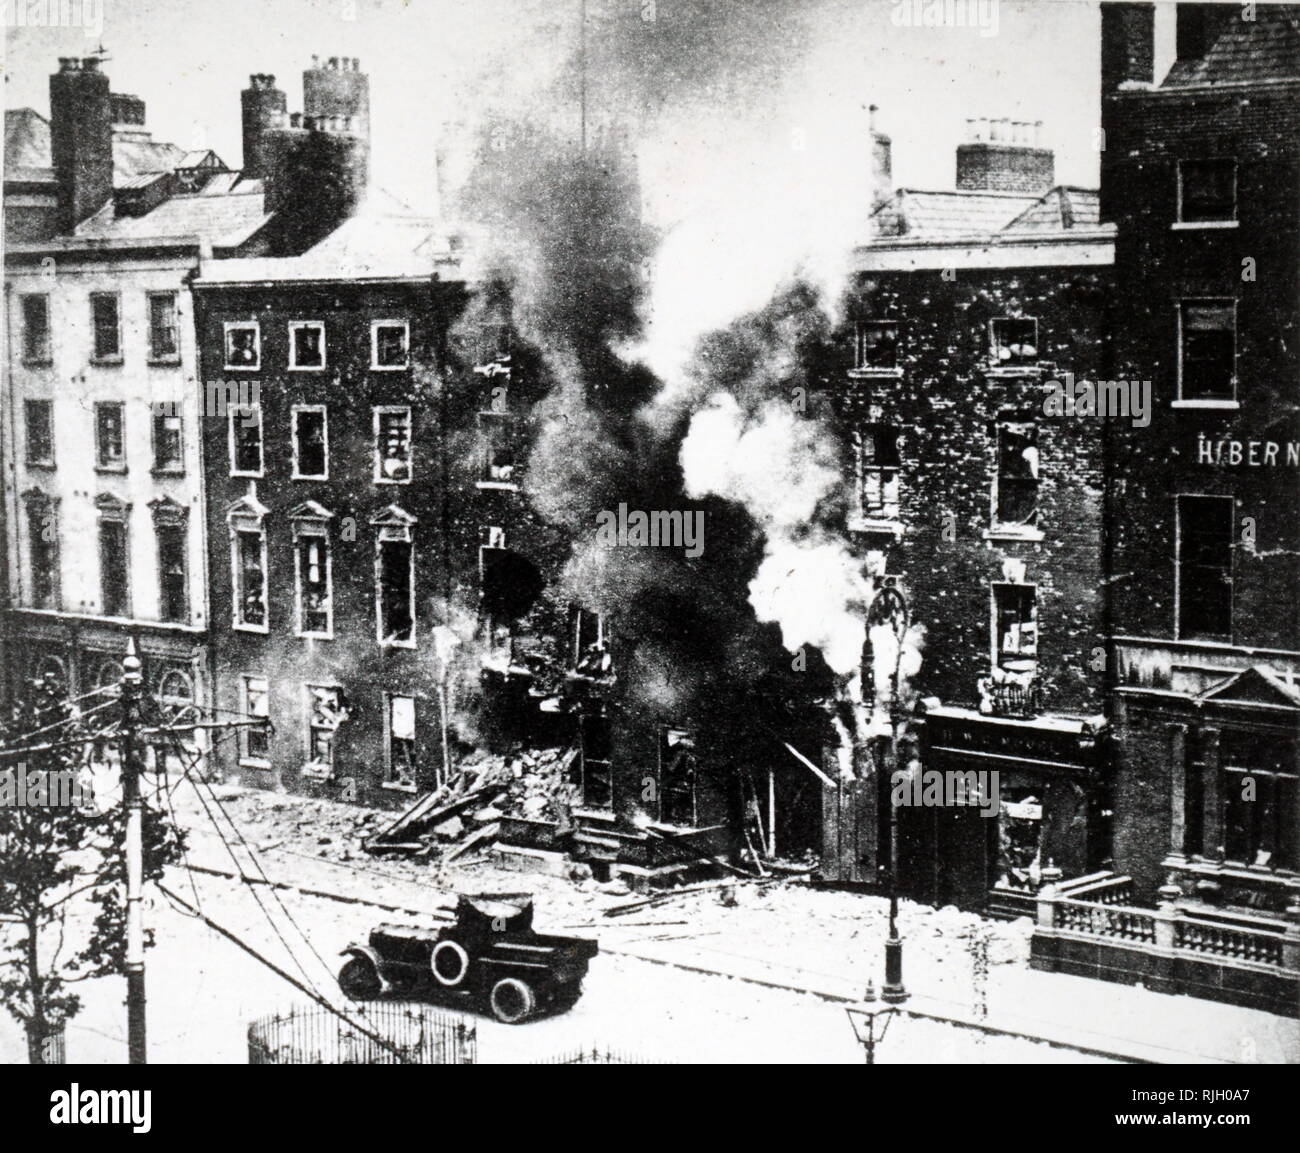 A photograph showing the method of burning out a rebel stronghold during the uprising in Ireland. Dated 20th century - Stock Image